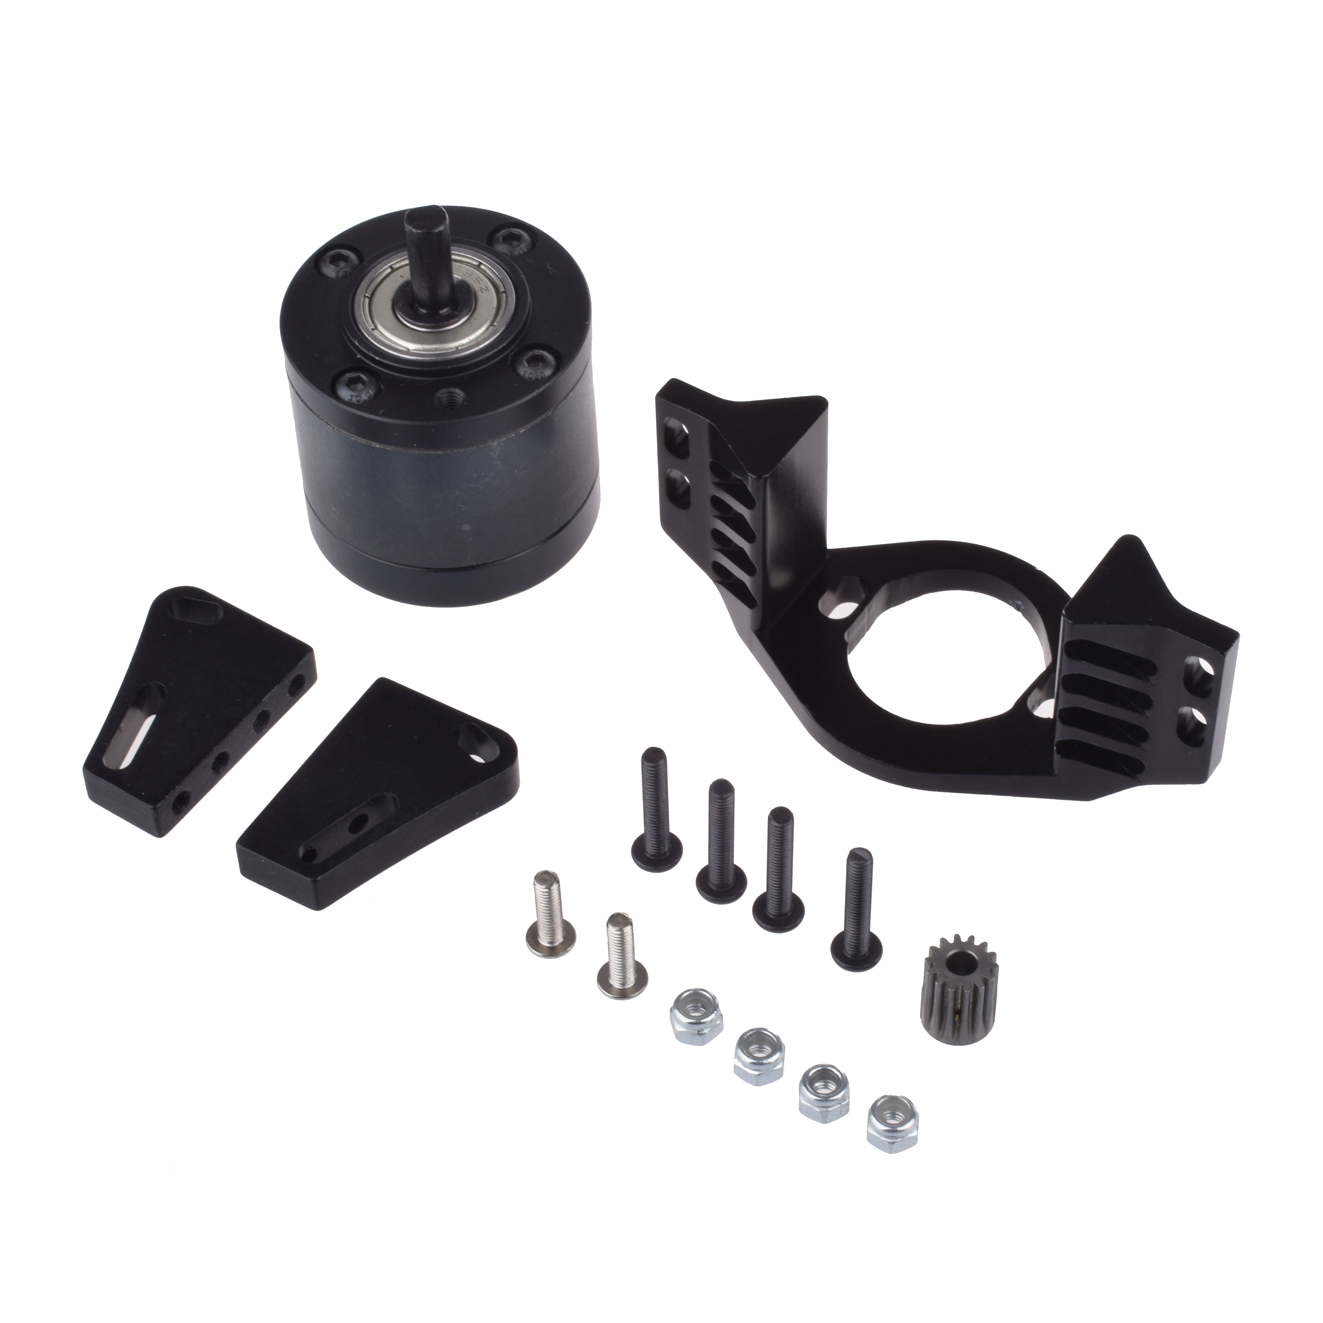 1set Metal Gearbox 1:5 Planetary Gear Box for 1/10 RC Crawler D90 Axial Tamiya Truck<br>